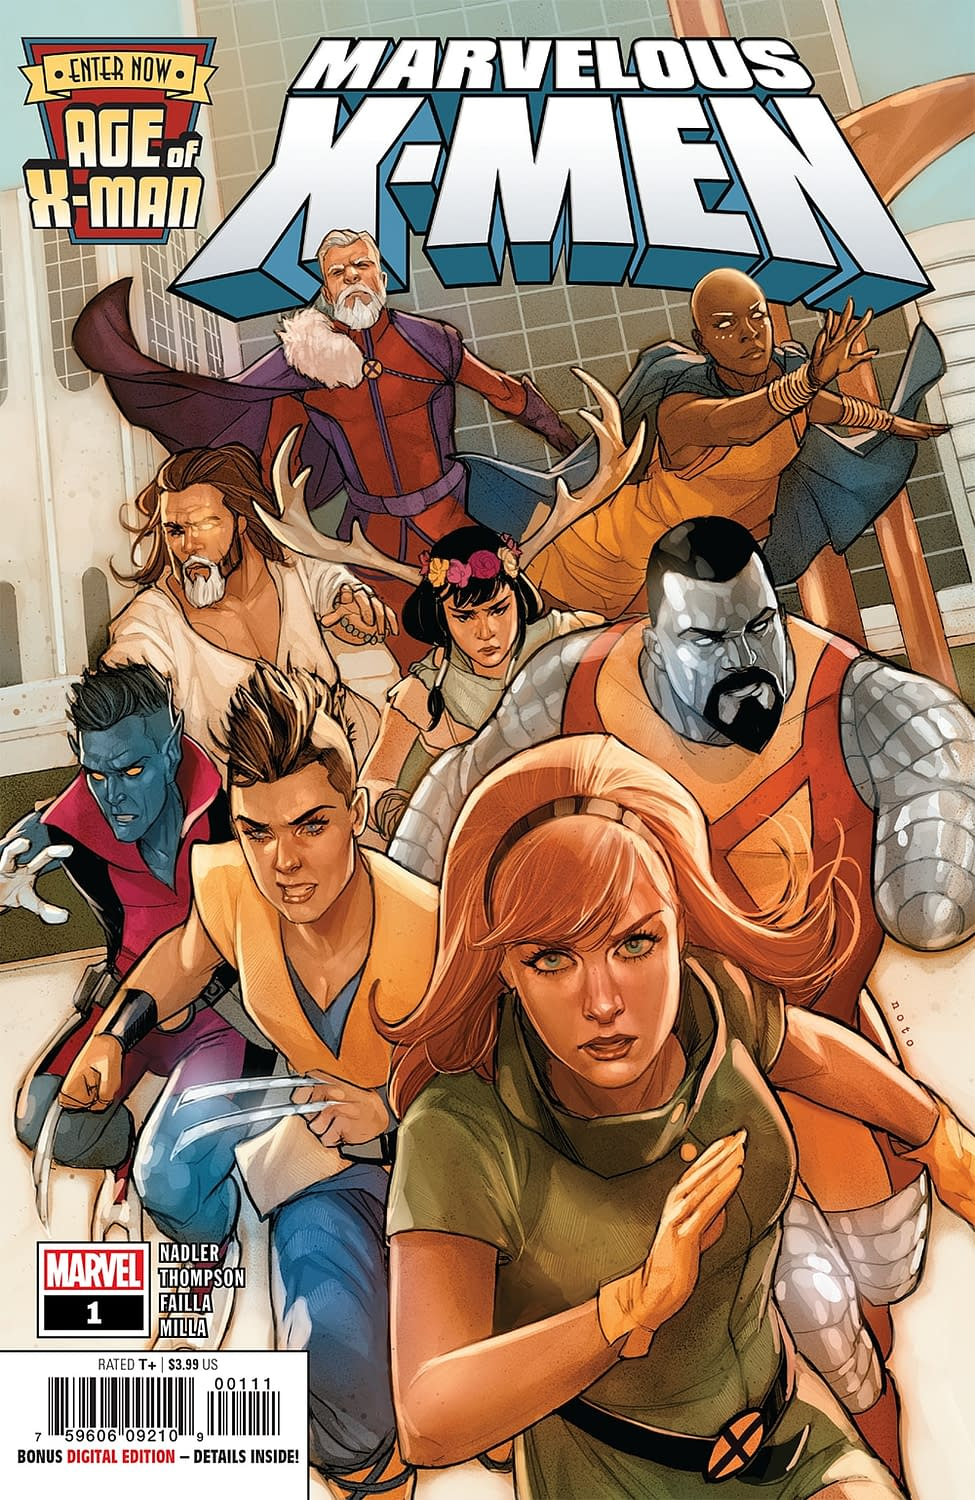 Nate Grey is a Master Retconner in Next Week's Age of X-Man: Marvelous X-Men #1